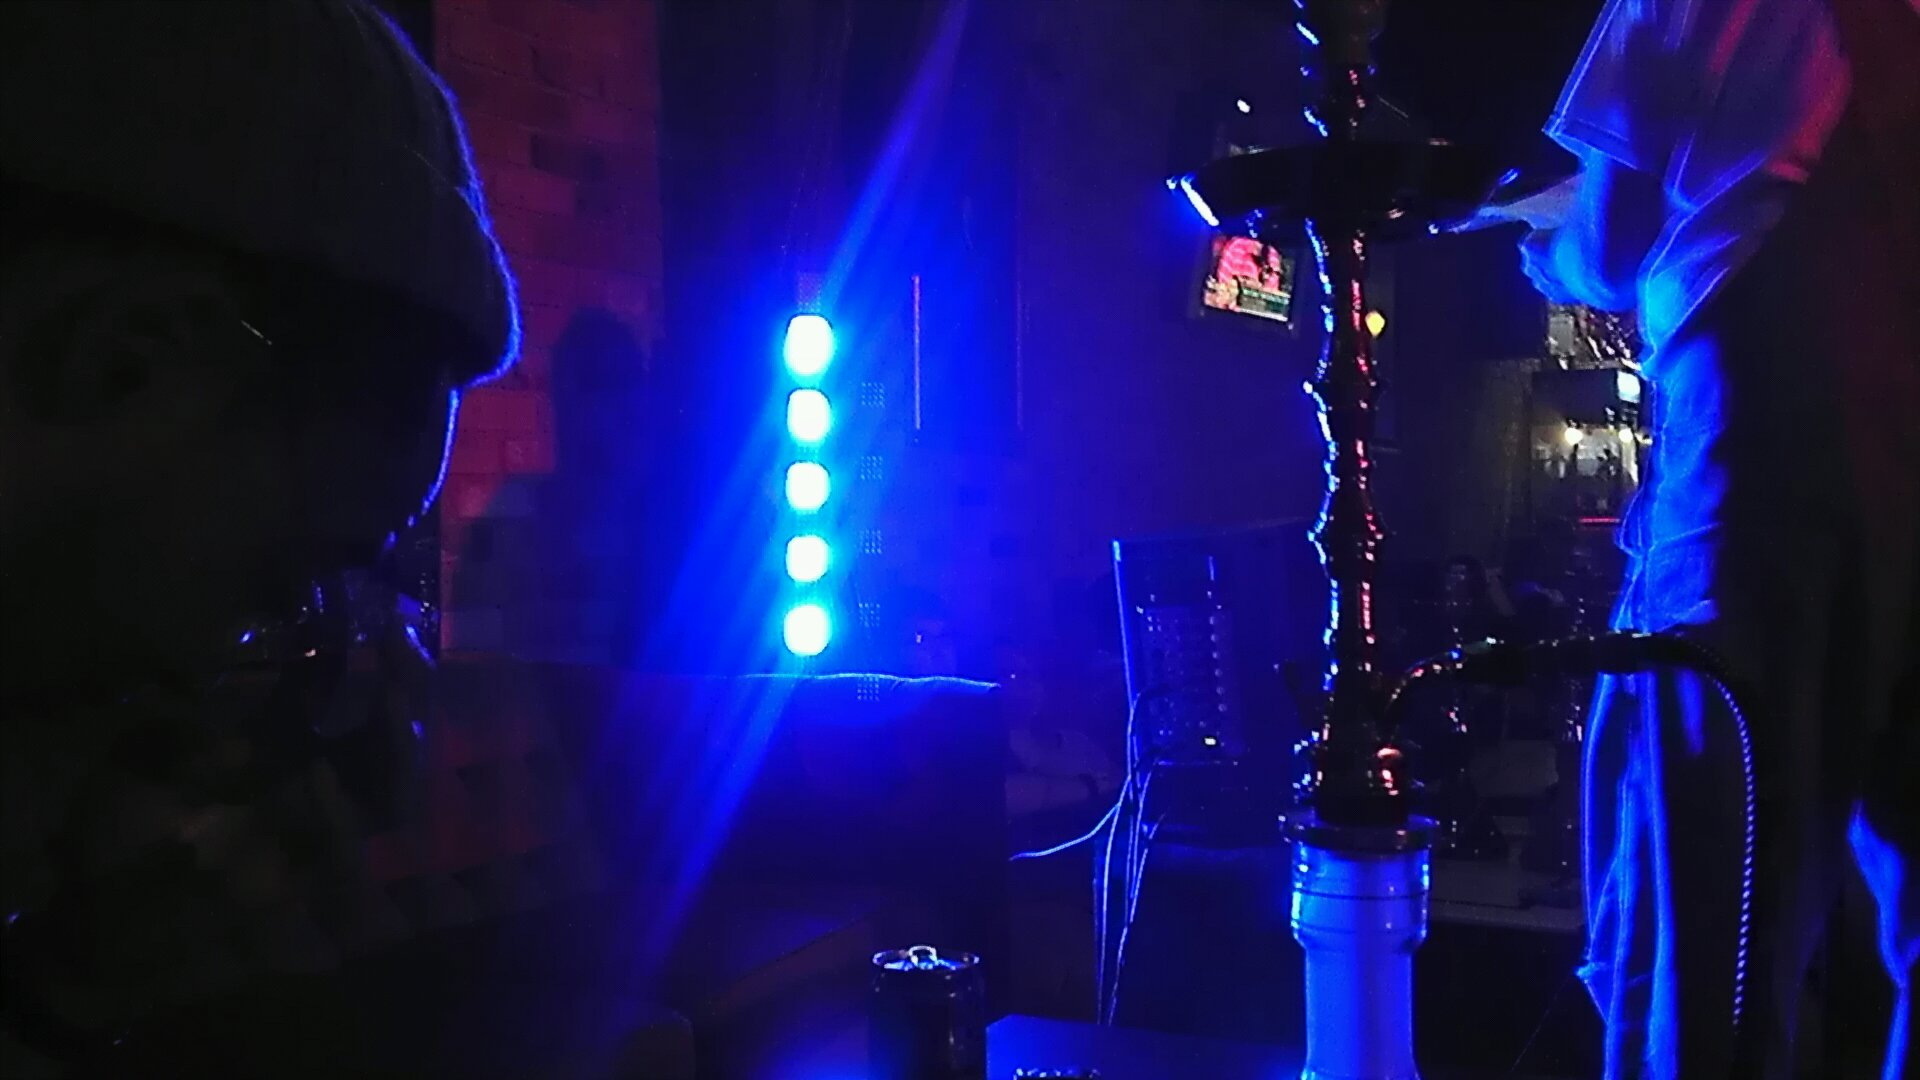 up and smoke hookah lounge Learn about working at up in smoke hookah lounge join linkedin today for free see who you know at up in smoke hookah lounge, leverage your professional network, and get hired.